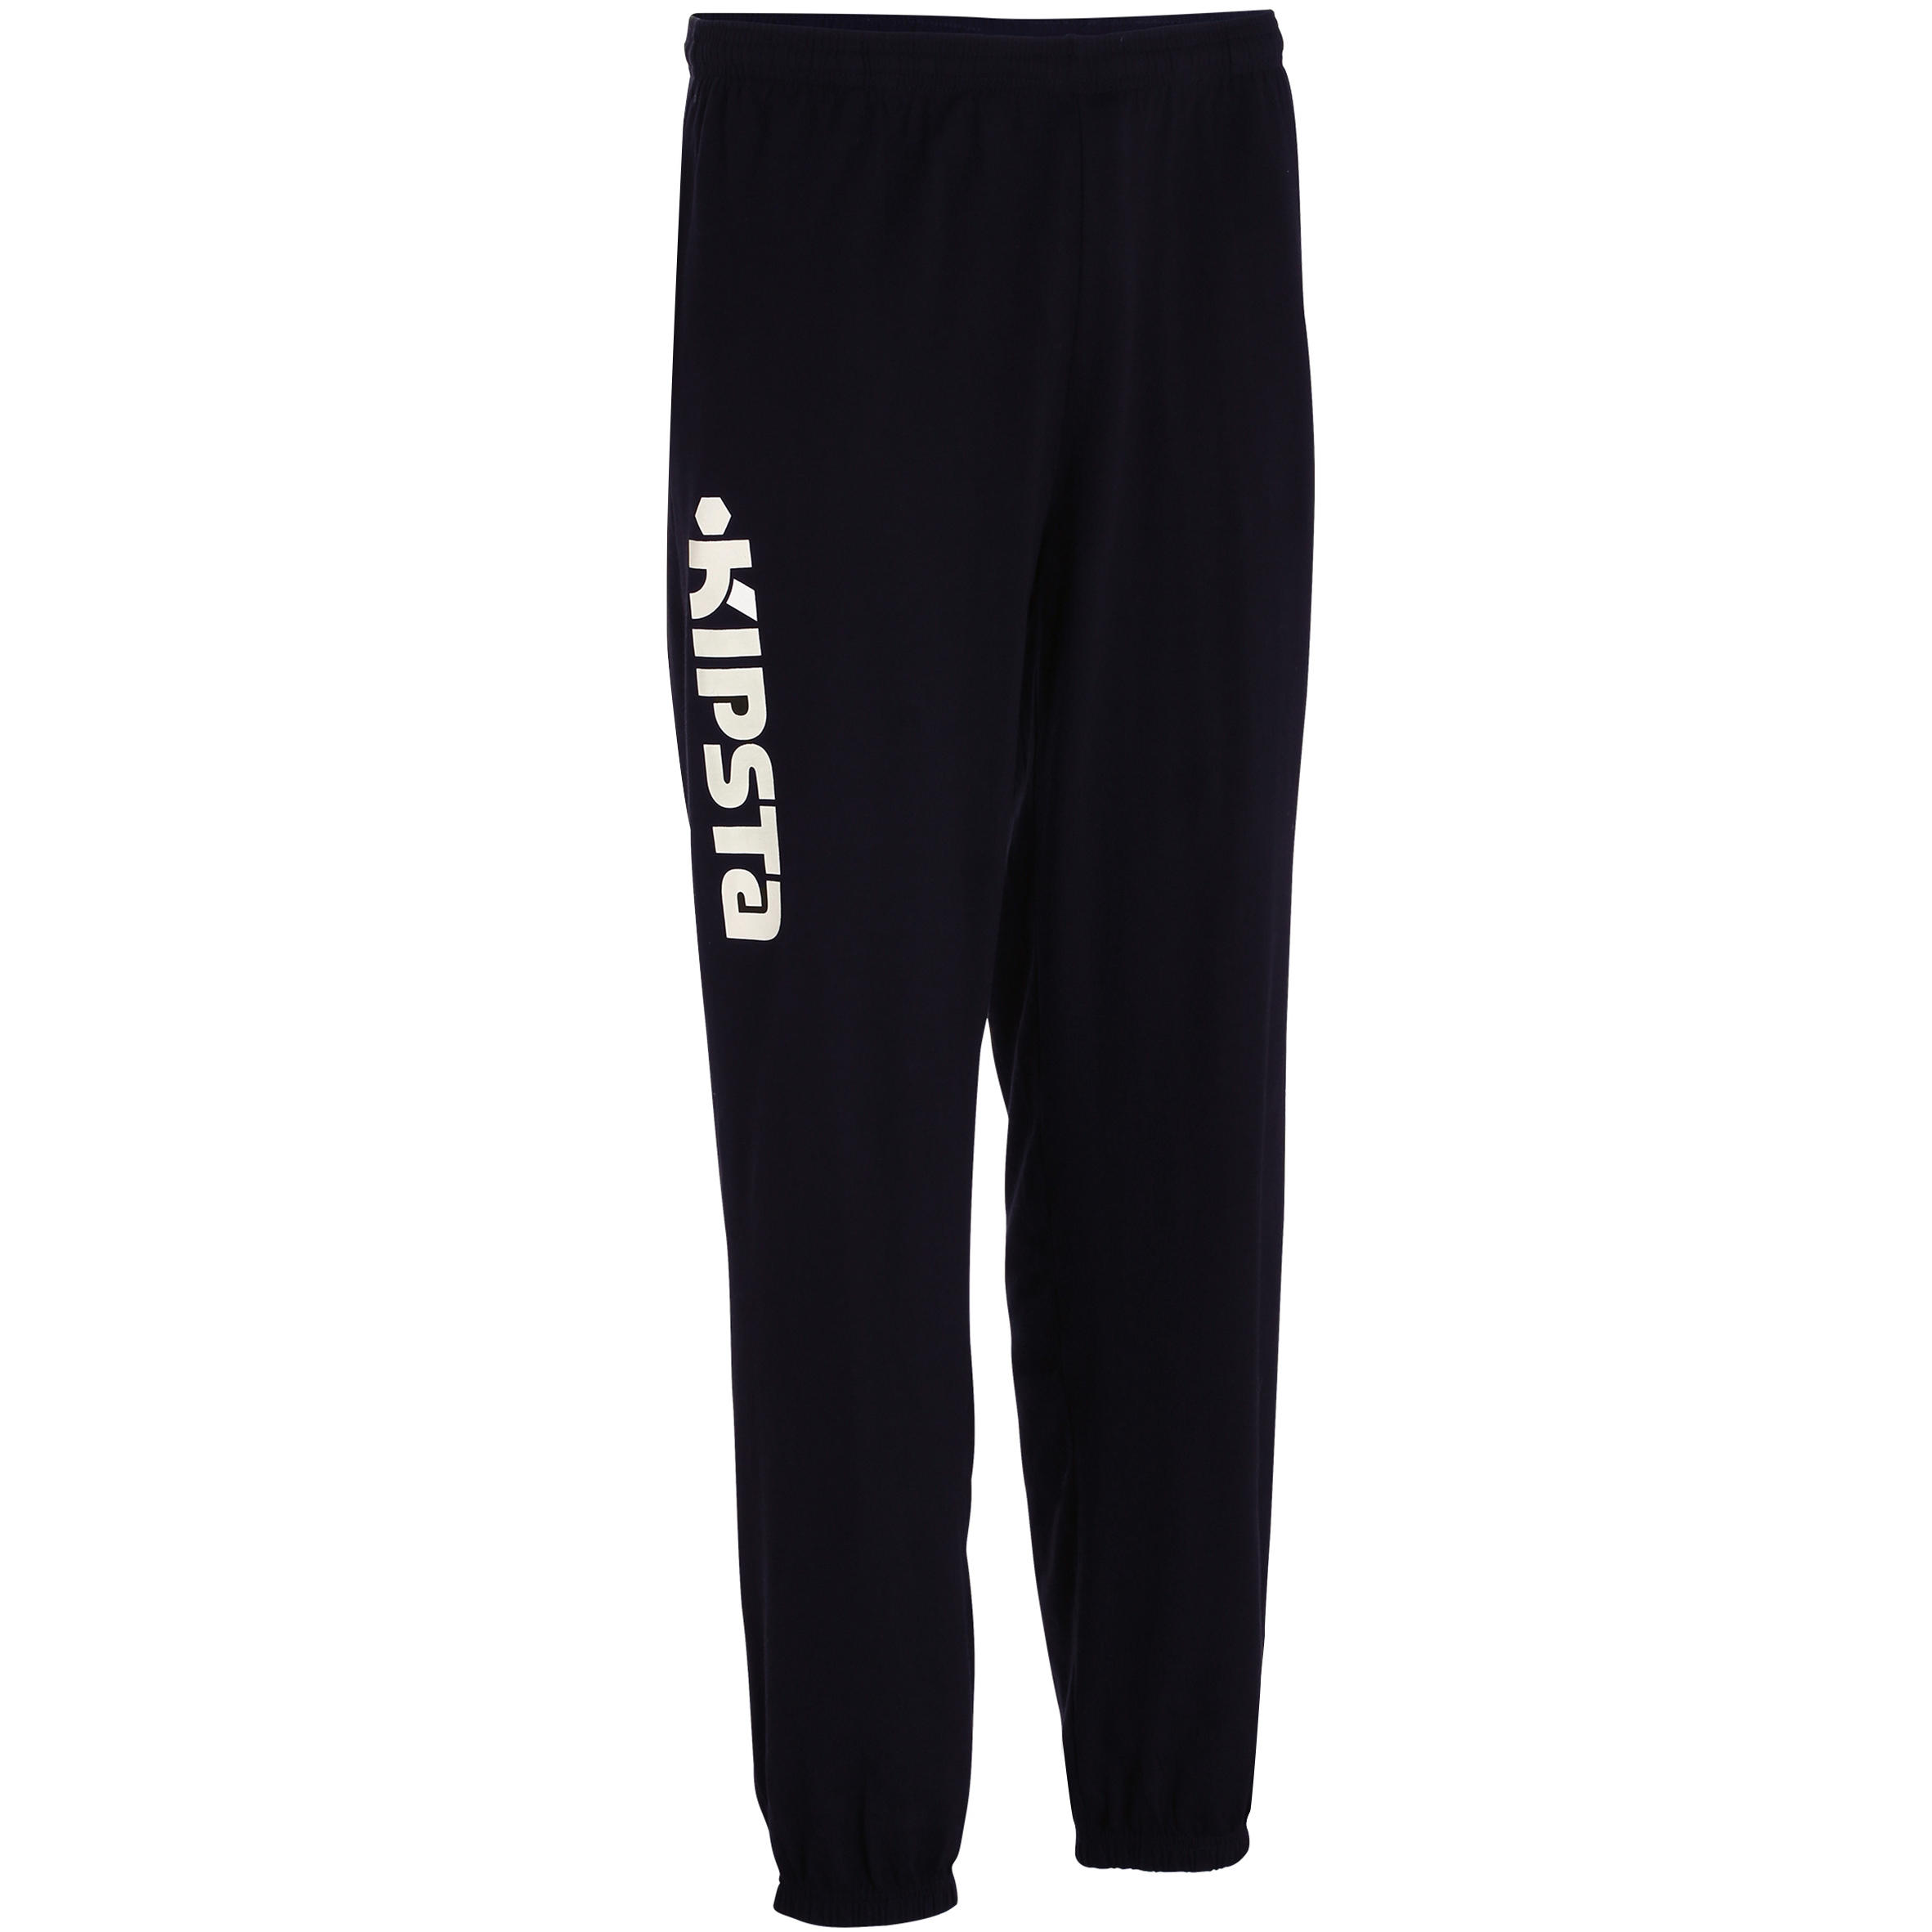 V 100 Adult Volleyball Sweatpants - Black White